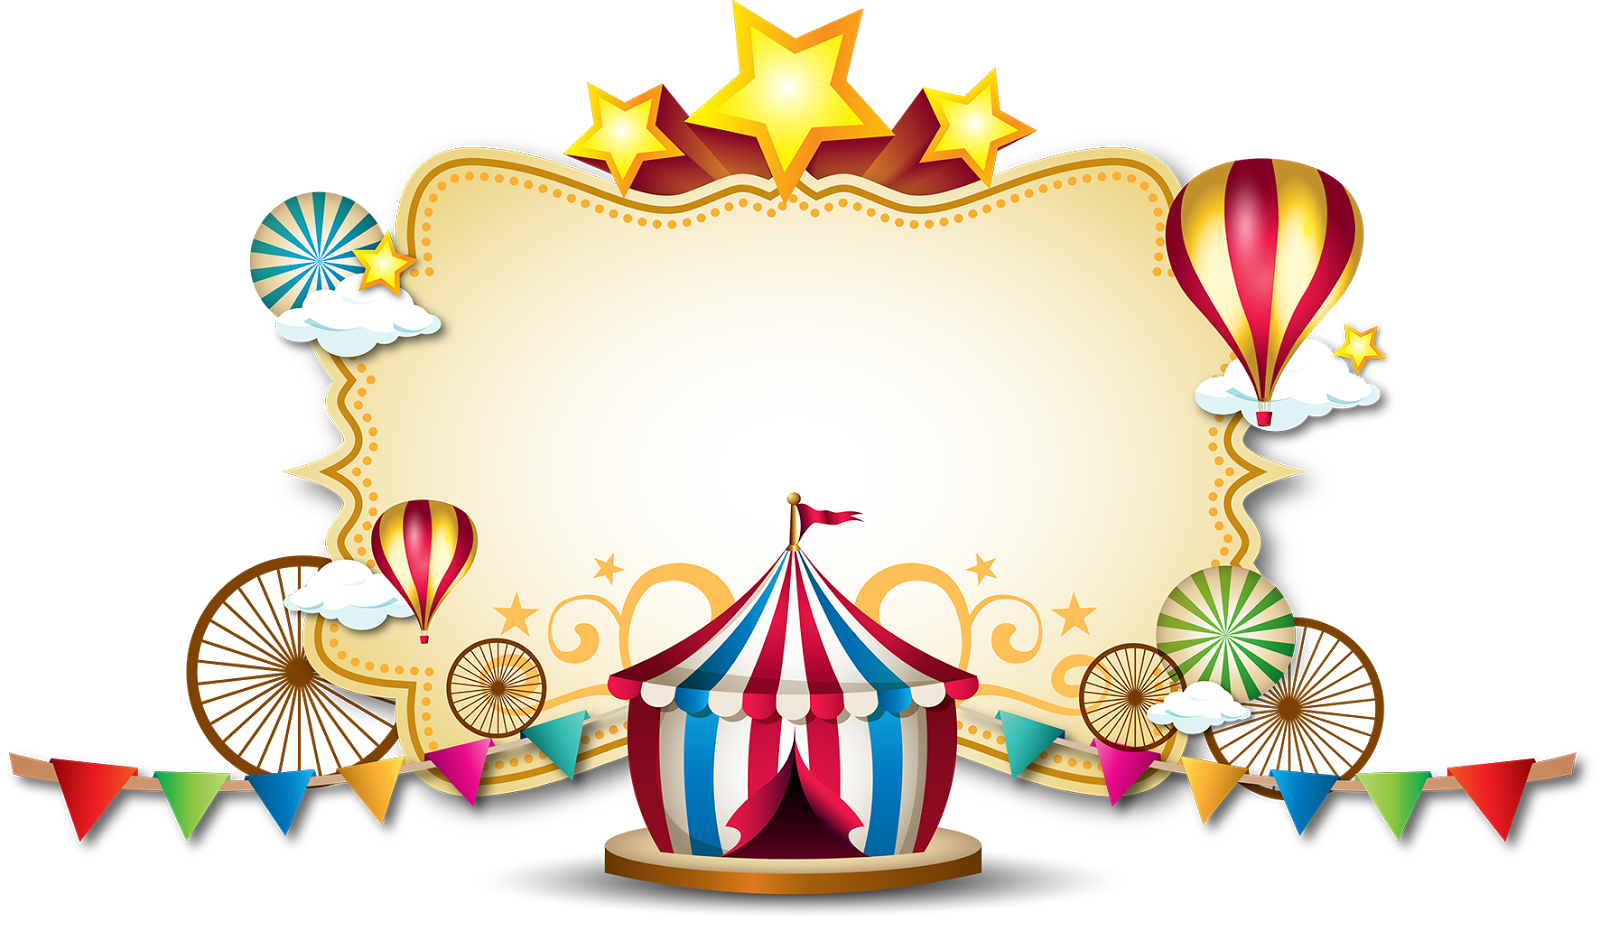 Circus clipart label. Pin by edith godoy